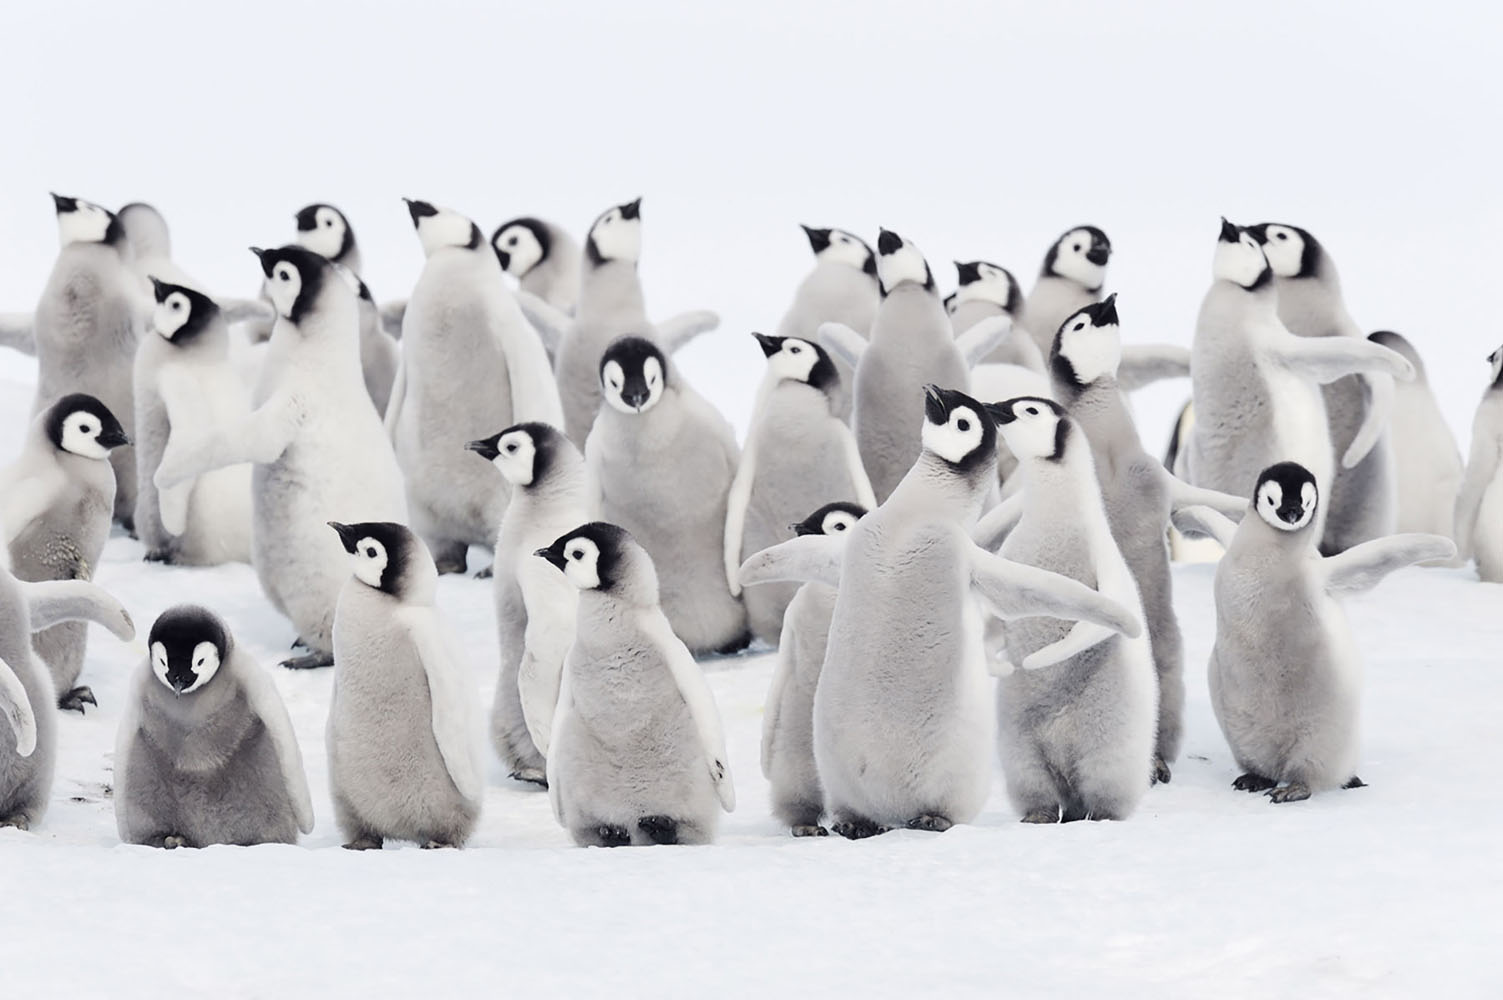 A group of baby Emperor Penguins in Antarctica.